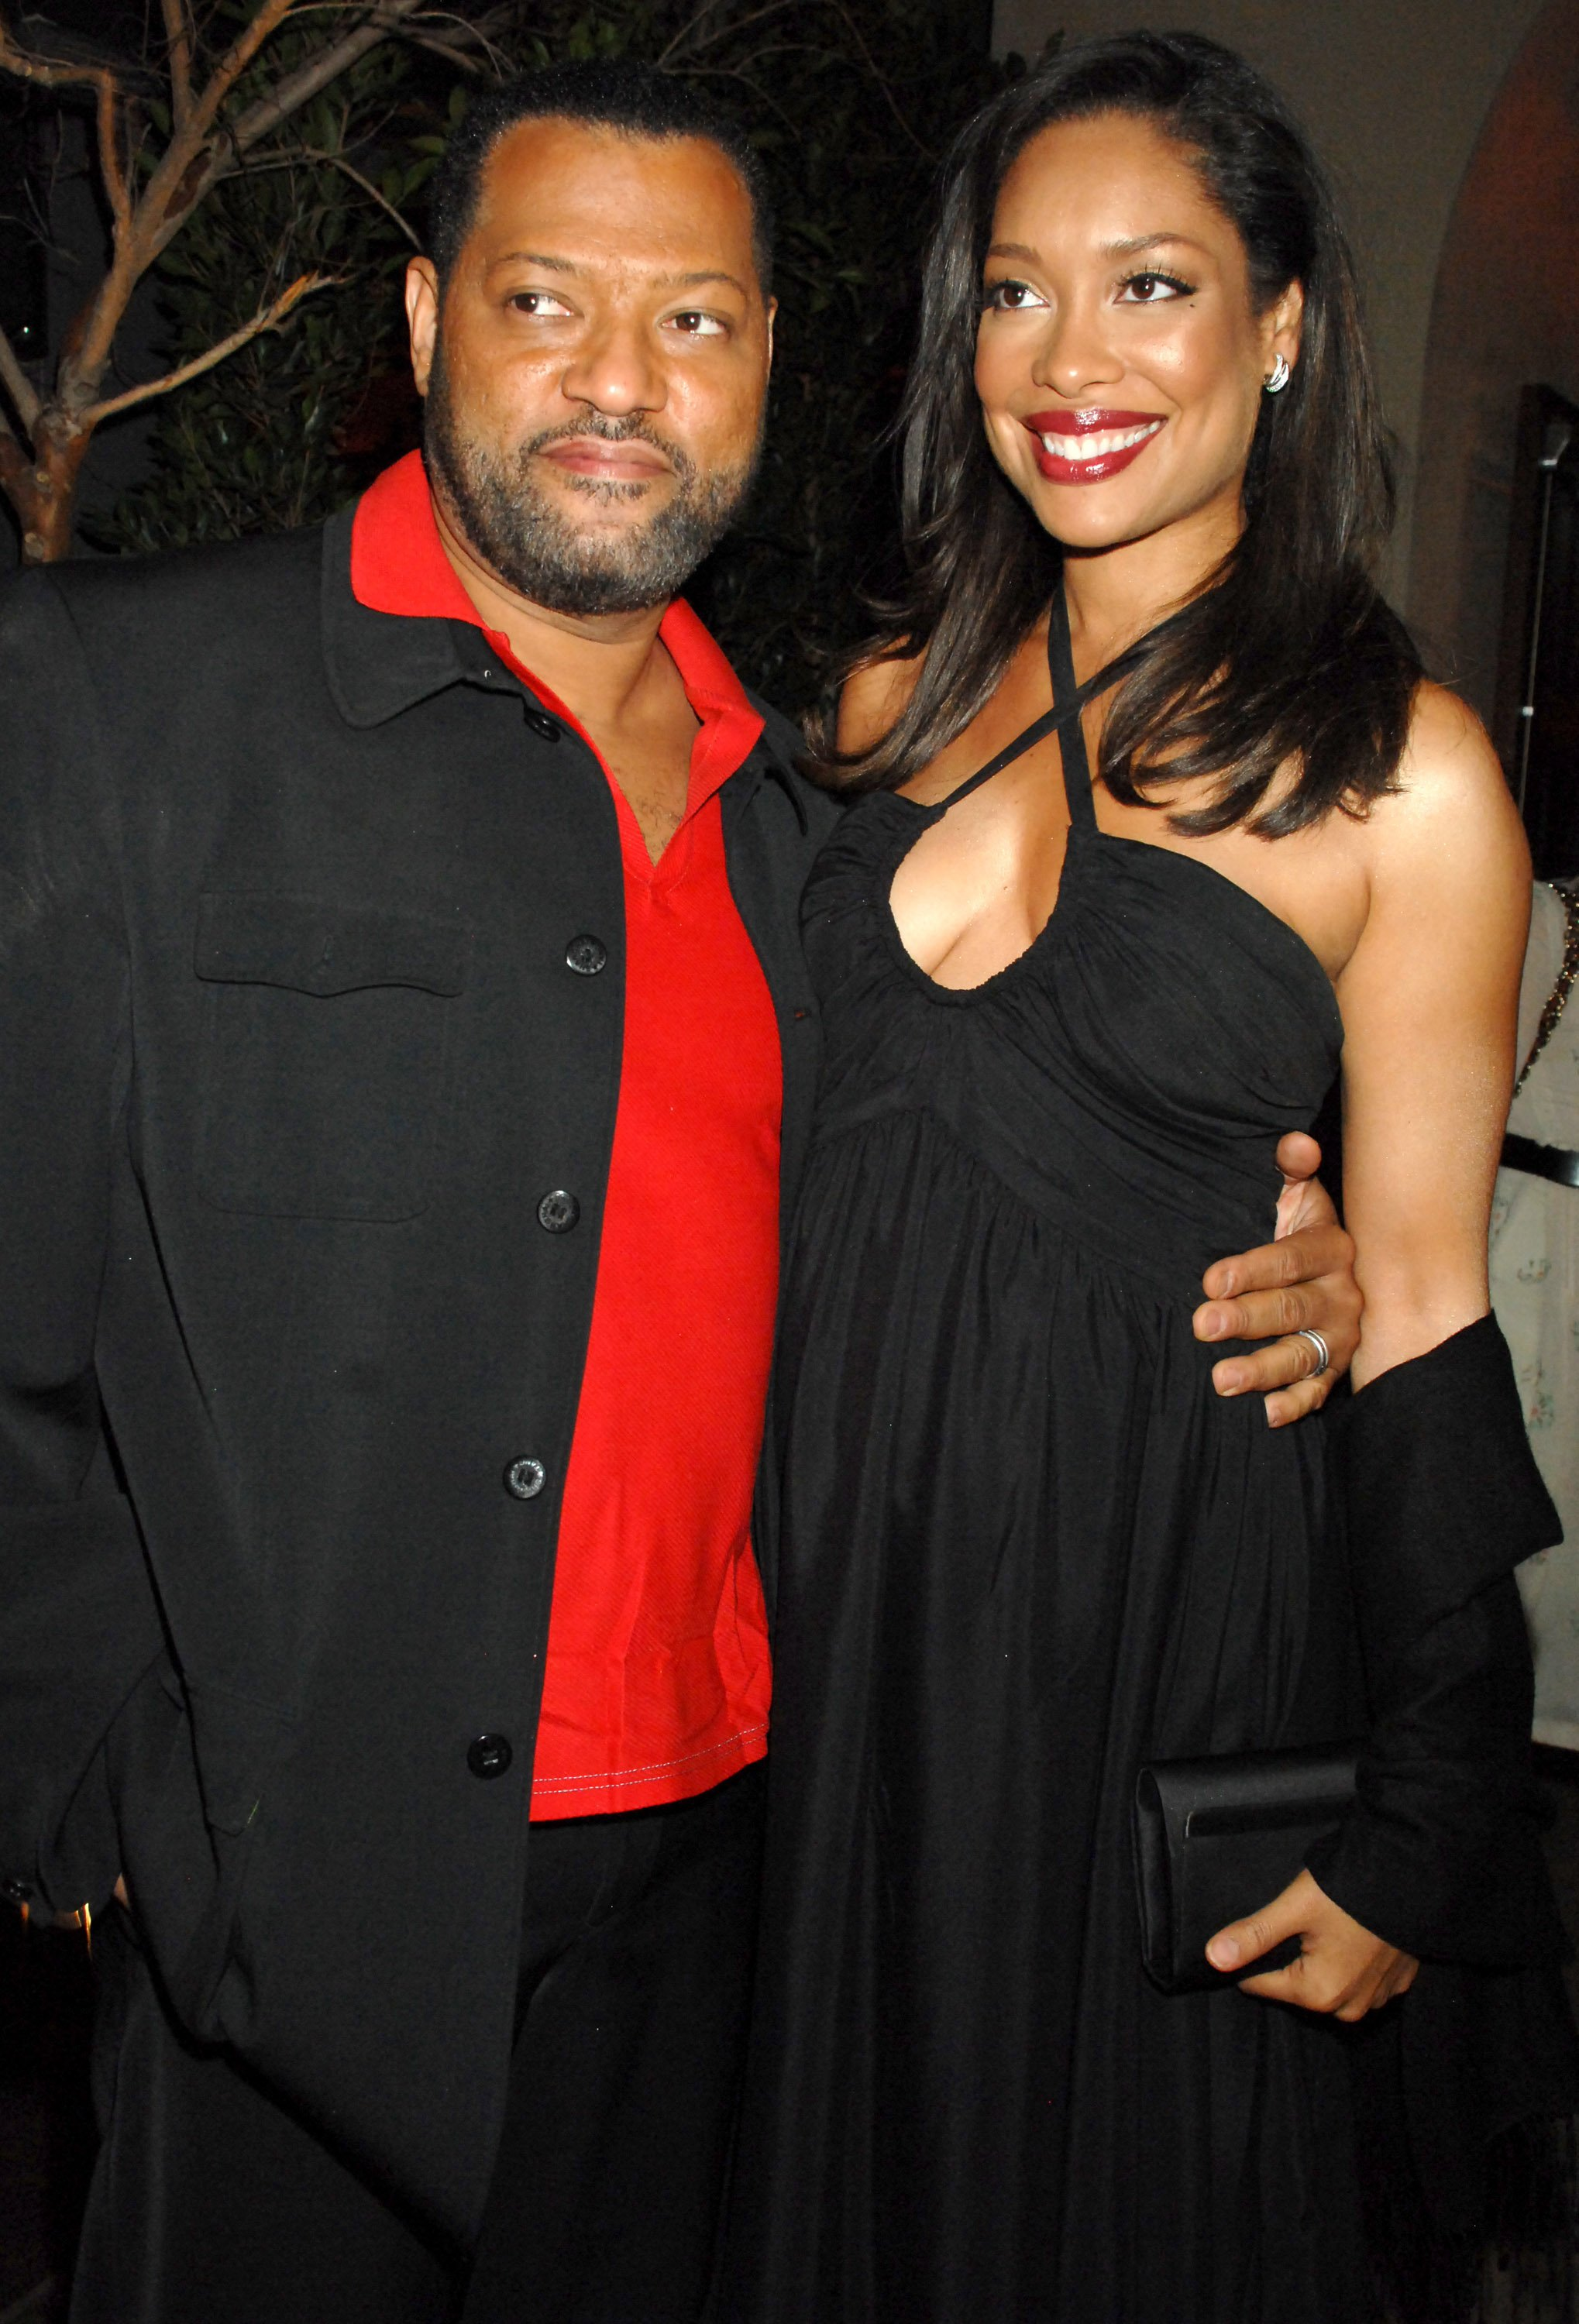 """Laurence Fishburne and Gina Torres during """"I Think I Love My Wife"""" Los Angeles Premiere - After Party, March 8, 2007 